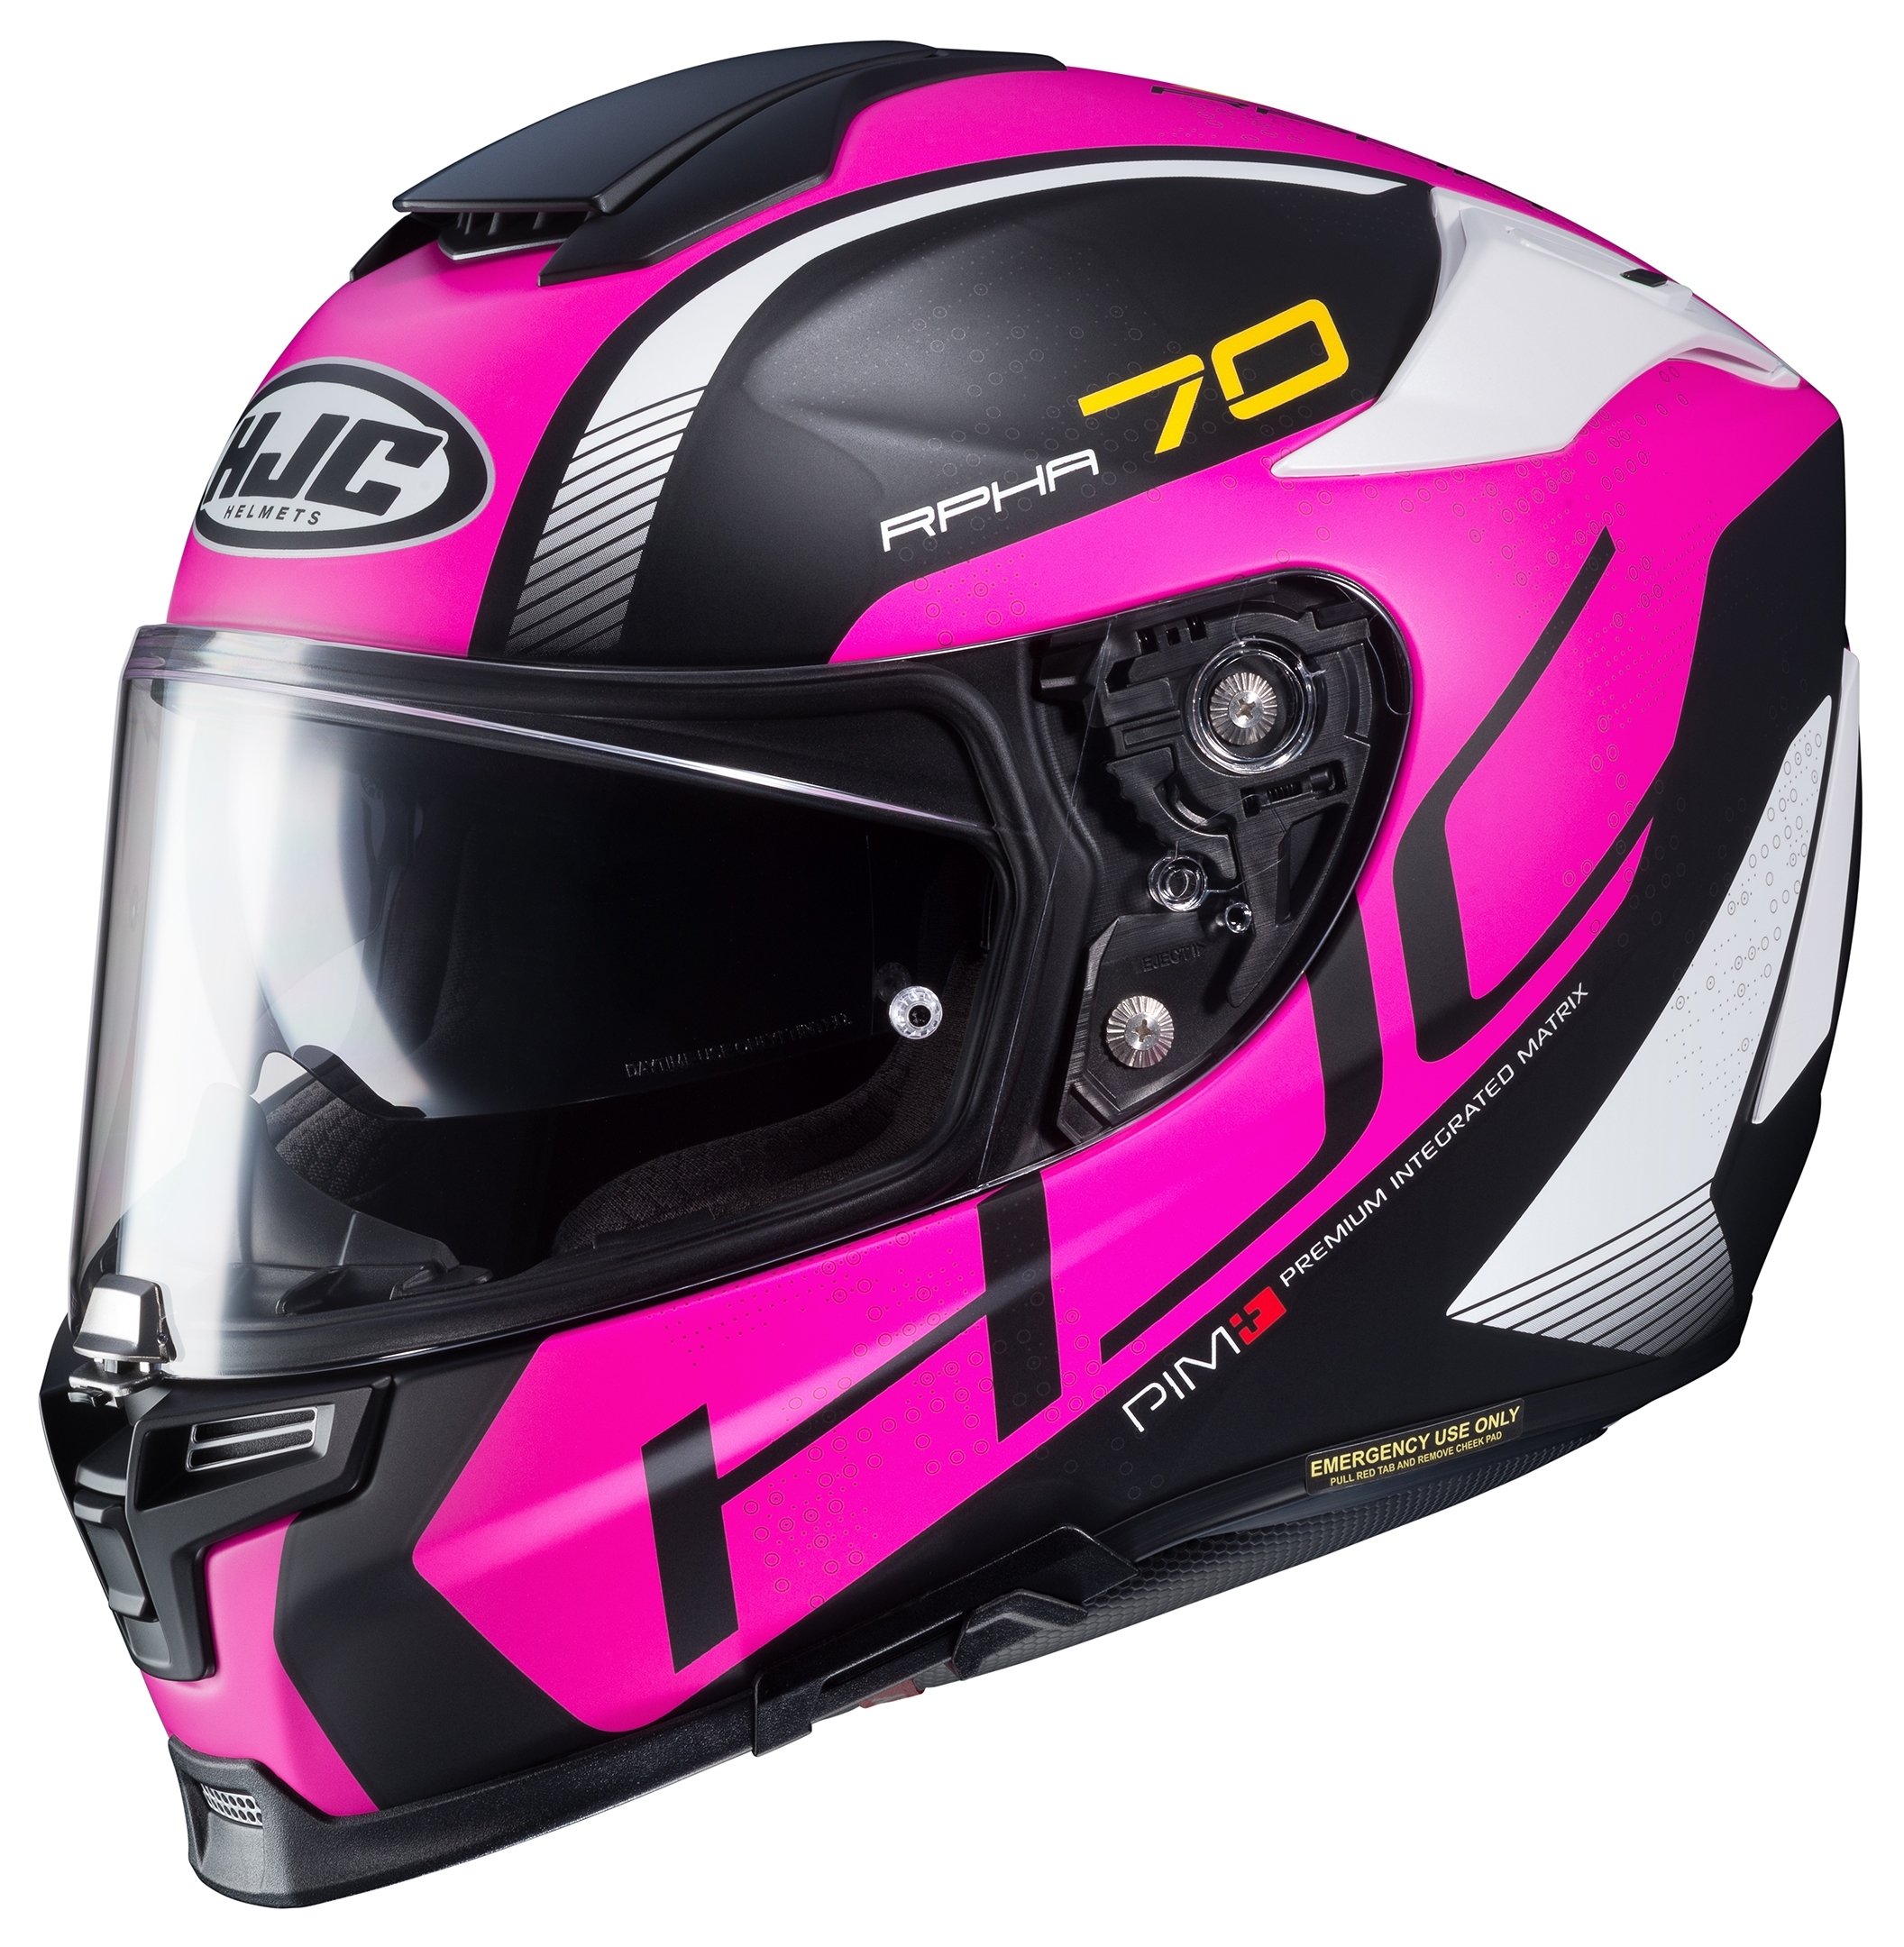 hjc rpha 70 st vias helmet 10 off revzilla. Black Bedroom Furniture Sets. Home Design Ideas